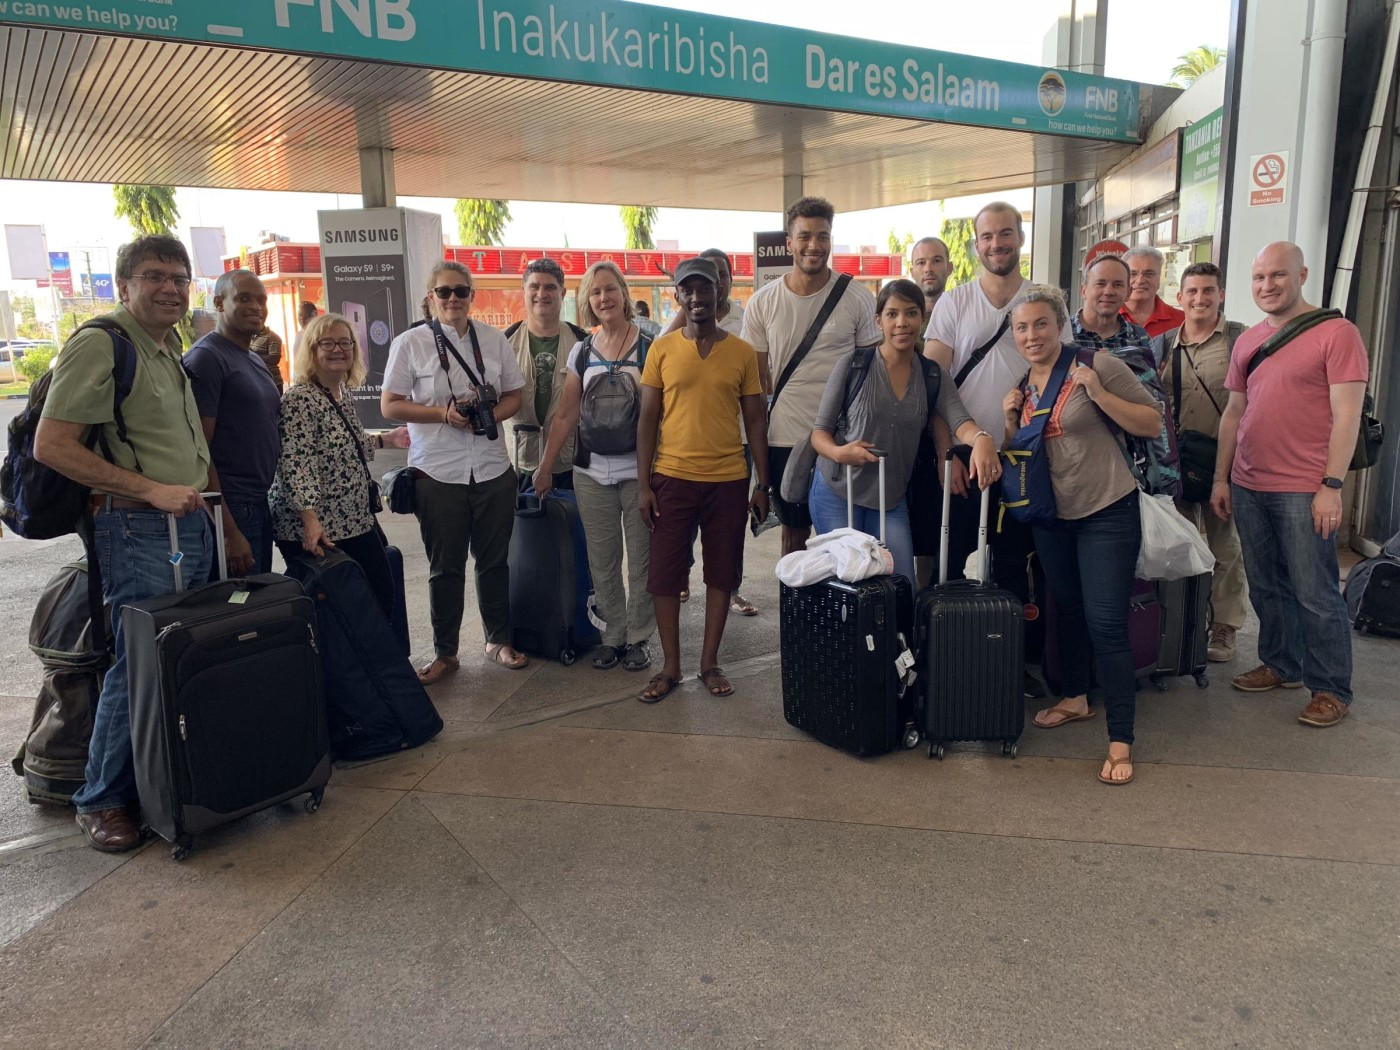 The first team shown on arrival at Julius Nyerere International Airport in Dar es Salaam, Tanzania on Sunday, October 21, 2018: five radiology attending physicians, (Yale, Dartmouth and West Haven VA Hospital), an IR nurse and IR technologist (Yale-New Haven Hospital), four radiology residents (Yale and Dartmouth), a medical student (Bonn, Germany), a pathologist, a spouse extraordinaire, and host Ivan Rukundo, MD, MUHAS radiology resident.